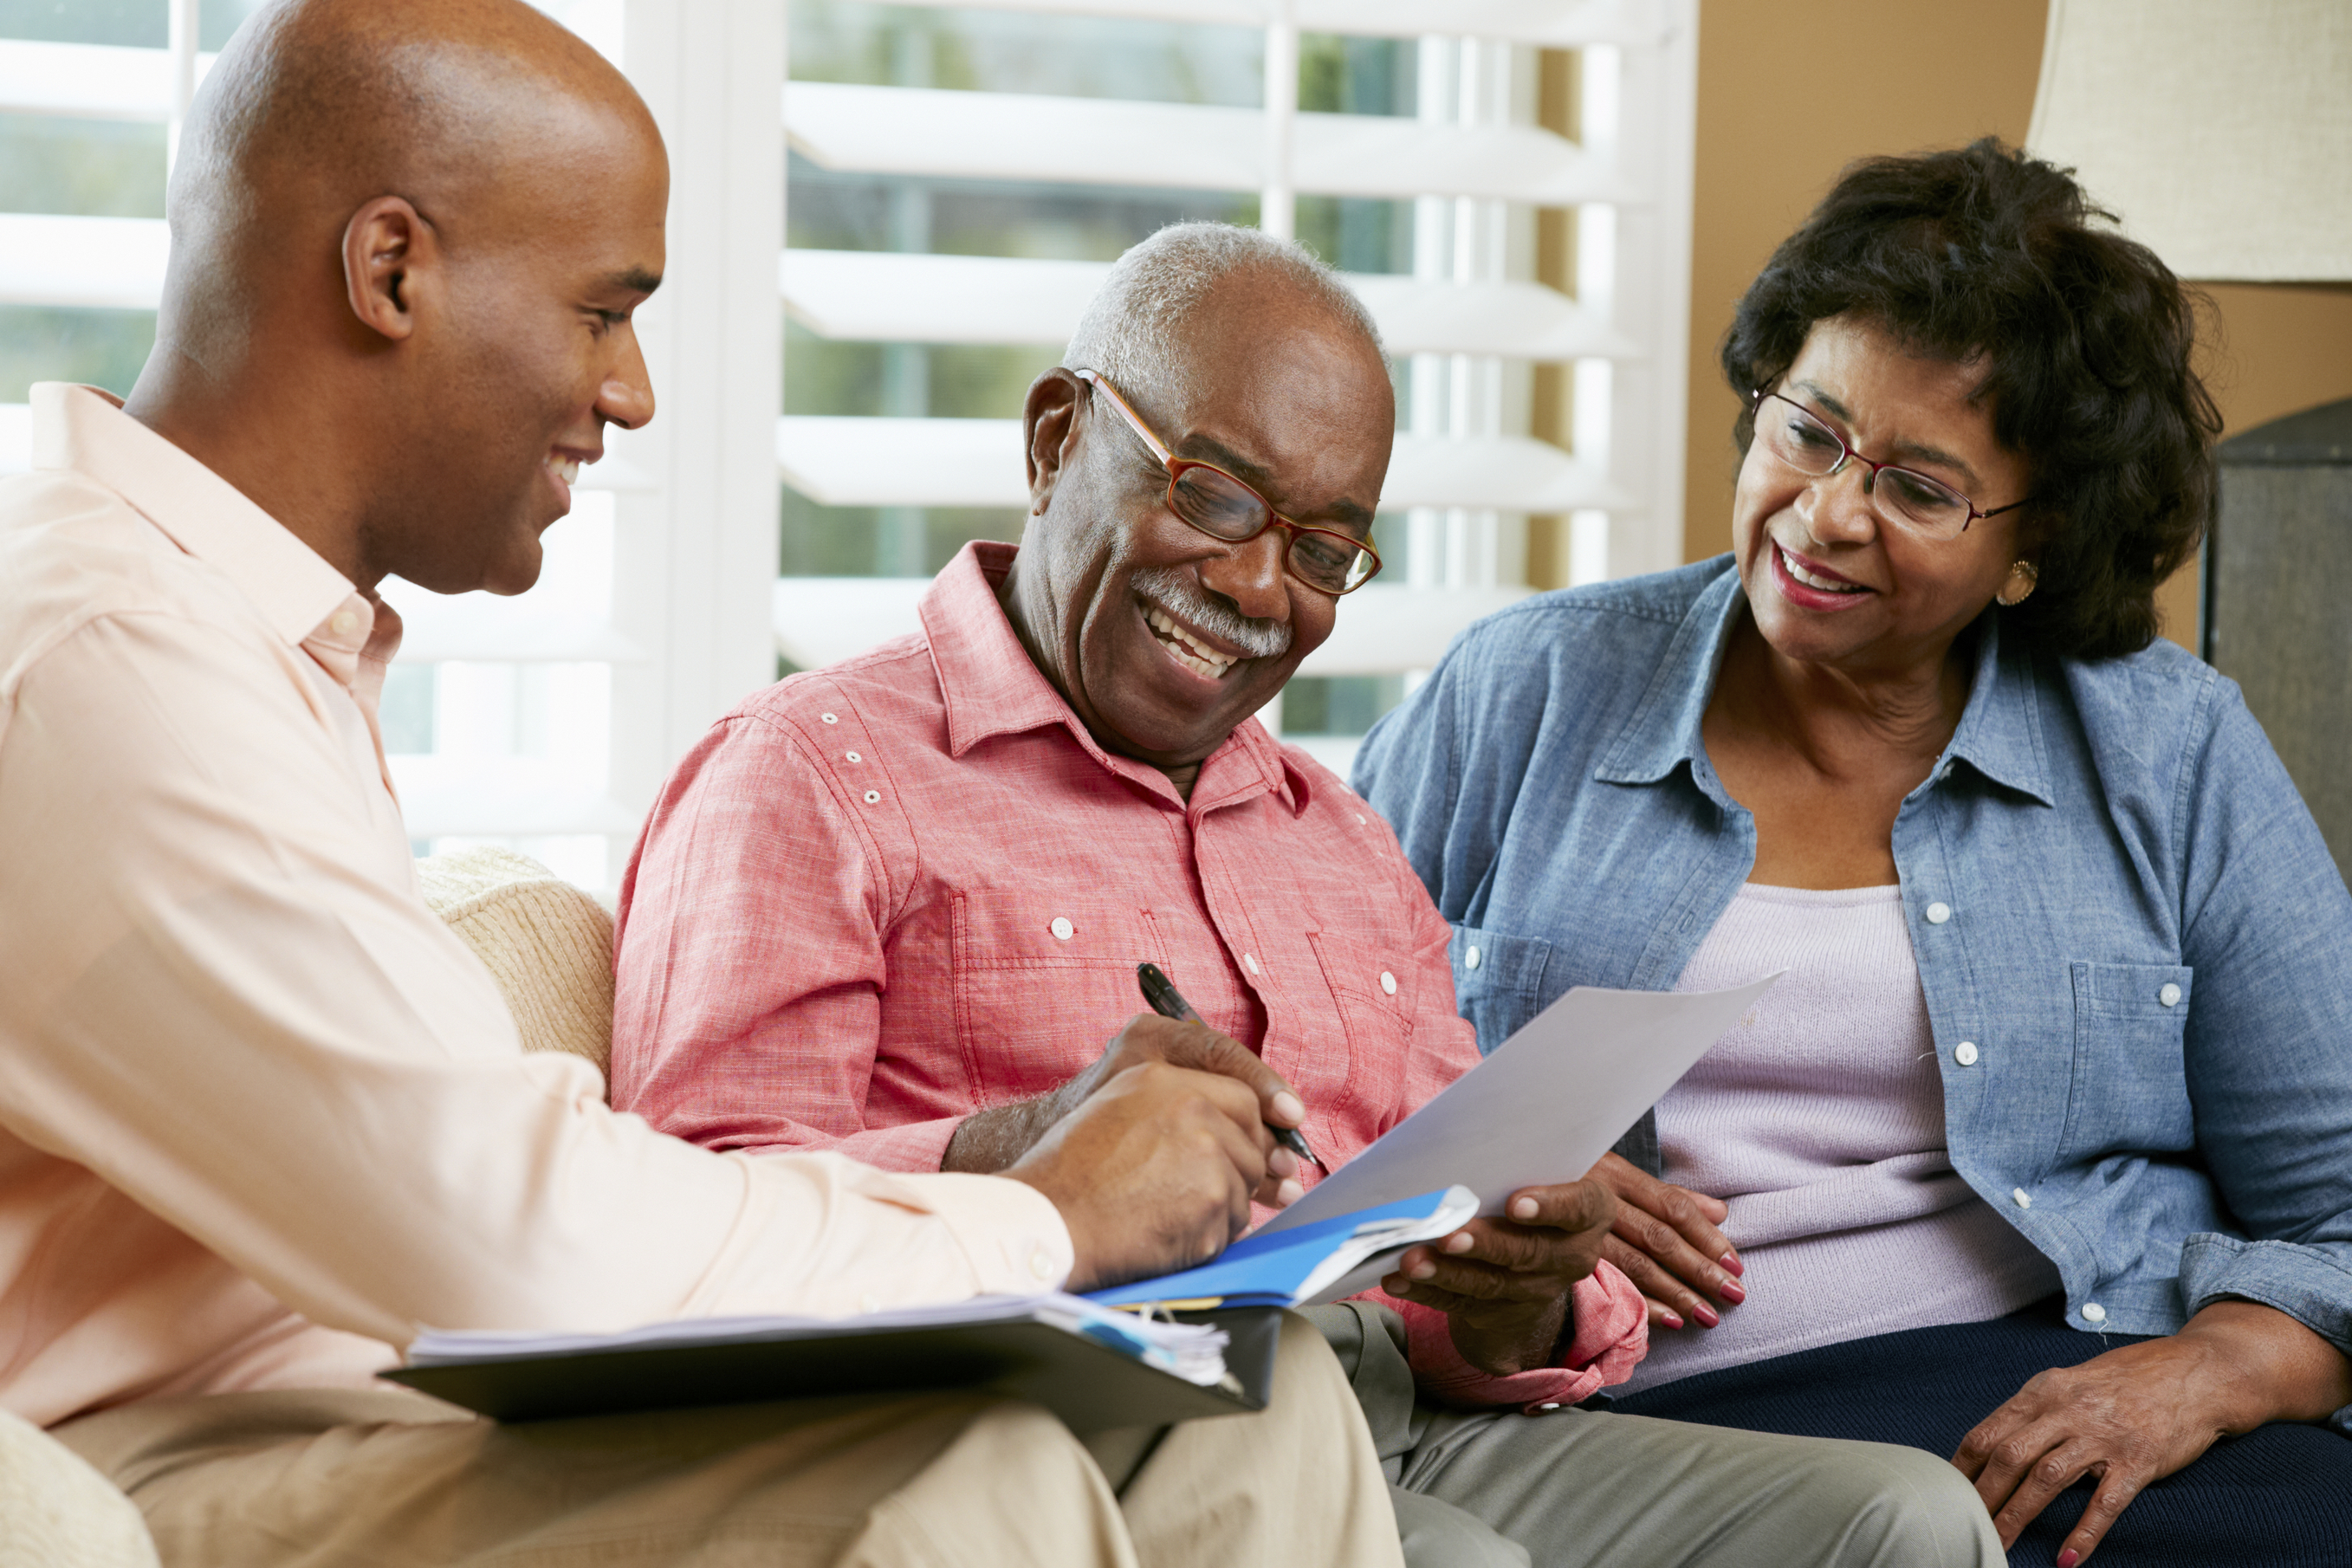 Financial Advisor Talking To Senior Couple At Home Signing Documents Smiling